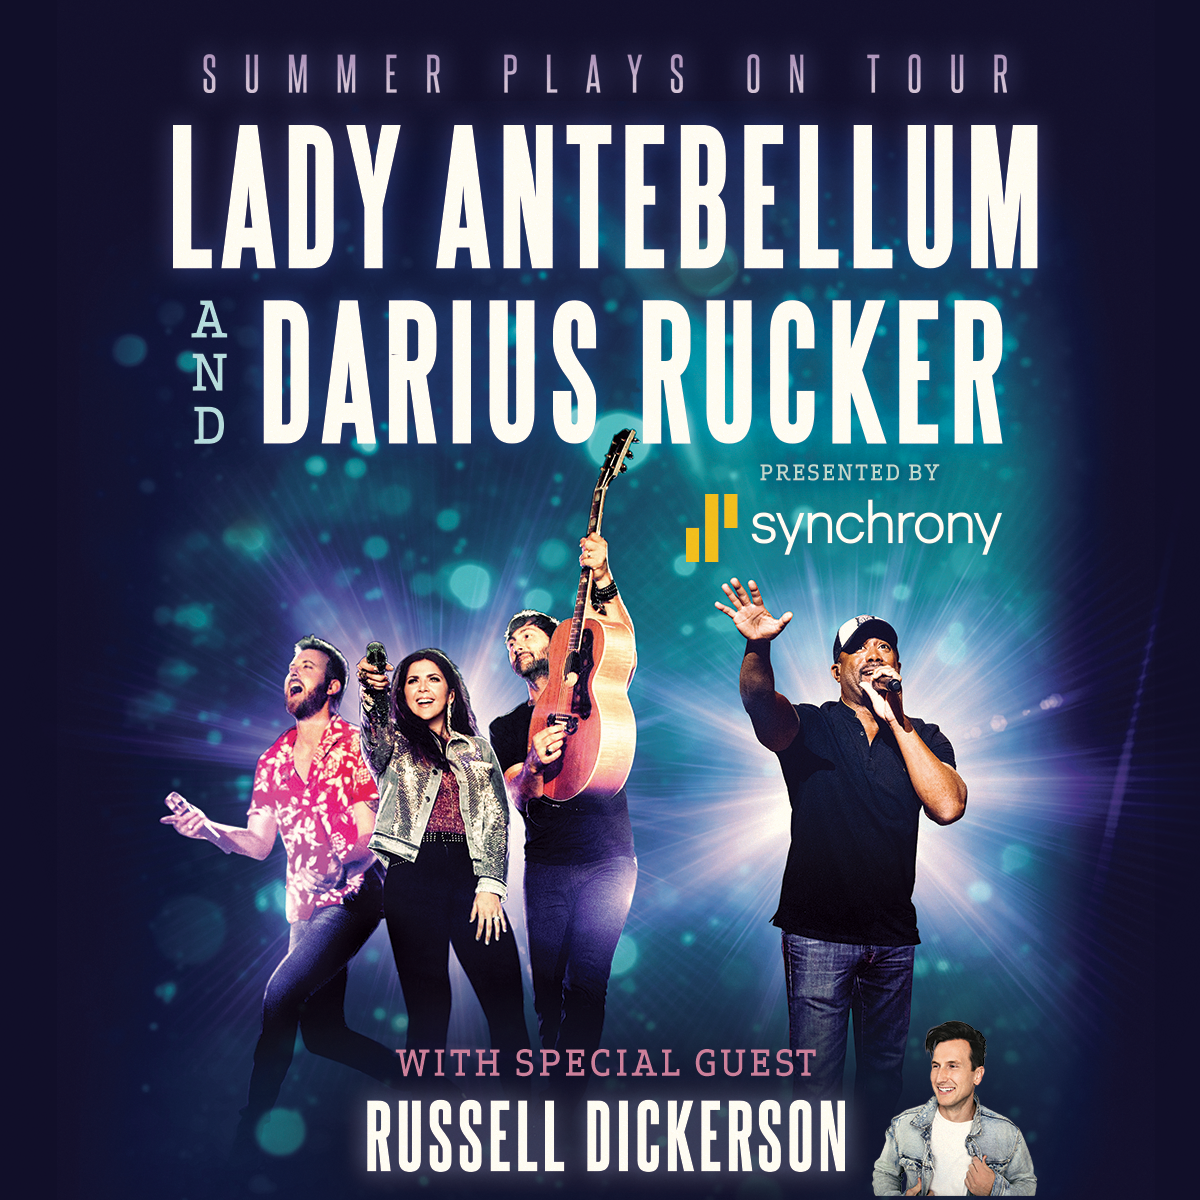 Lady Antebellum & Darius Rucker Announce 2018 'Summer Plays On Tour'